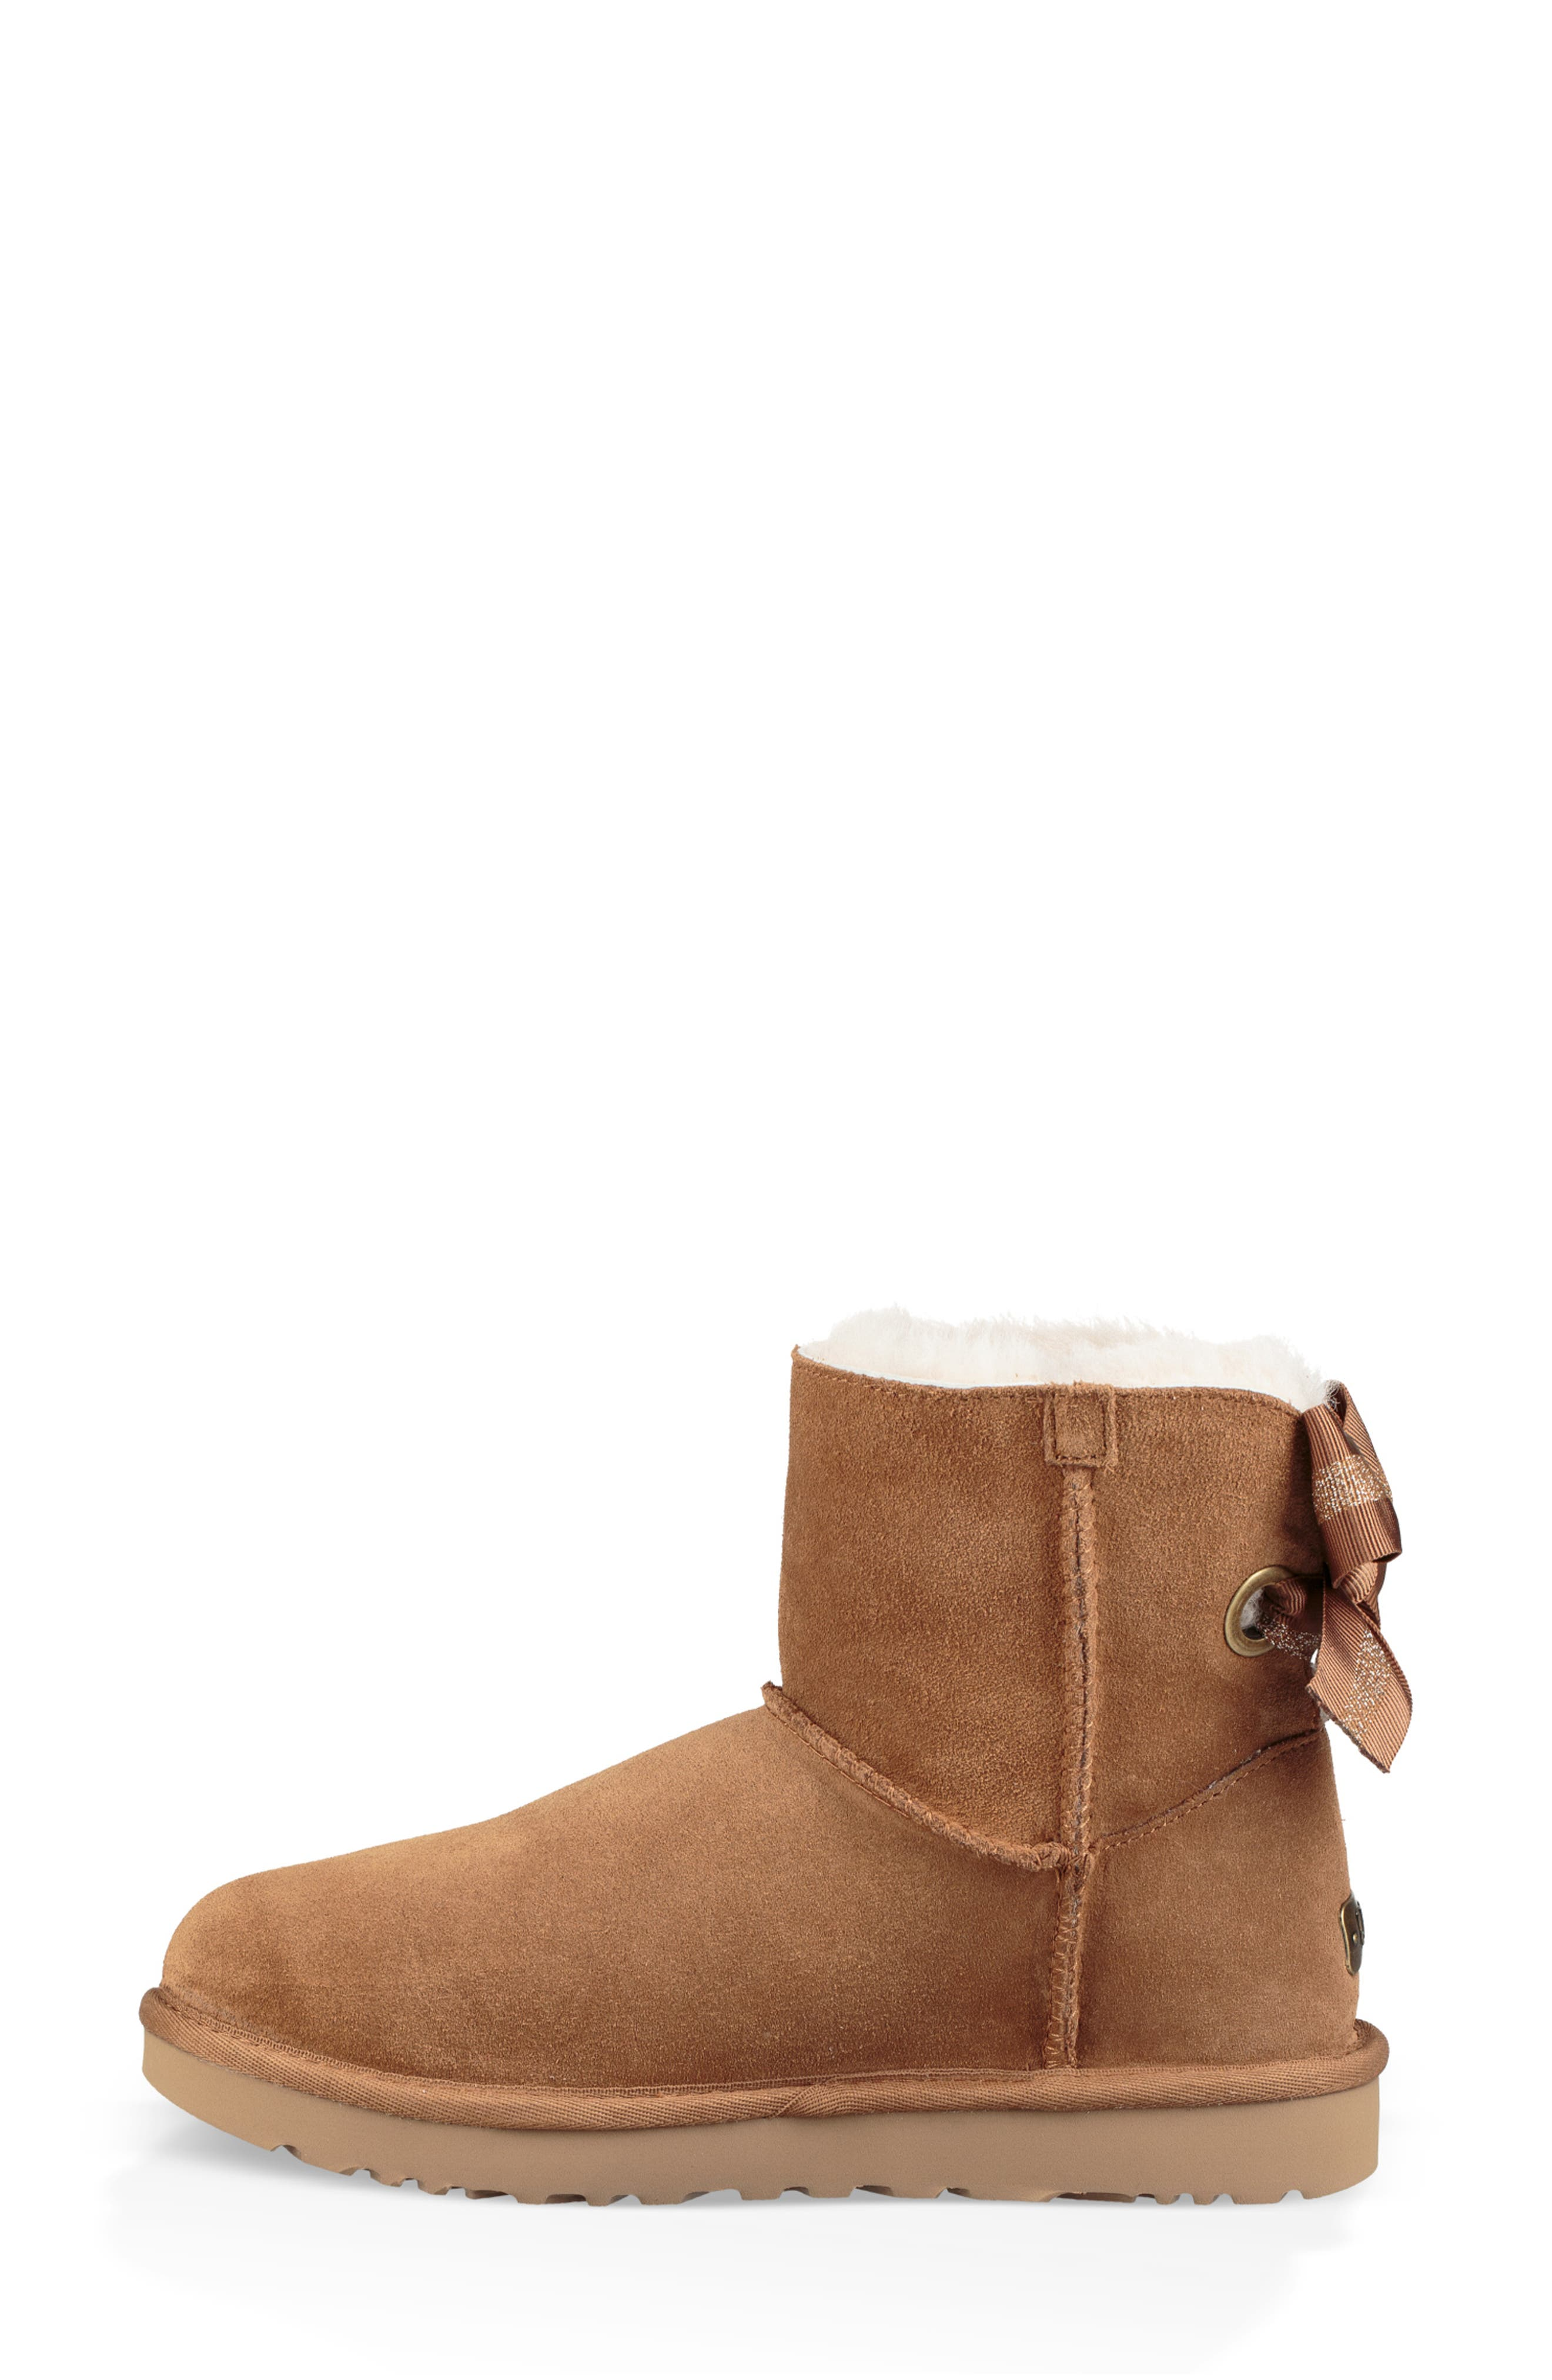 Customizable Bailey Bow Mini Genuine Shearling Bootie,                             Alternate thumbnail 7, color,                             CHESTNUT SUEDE